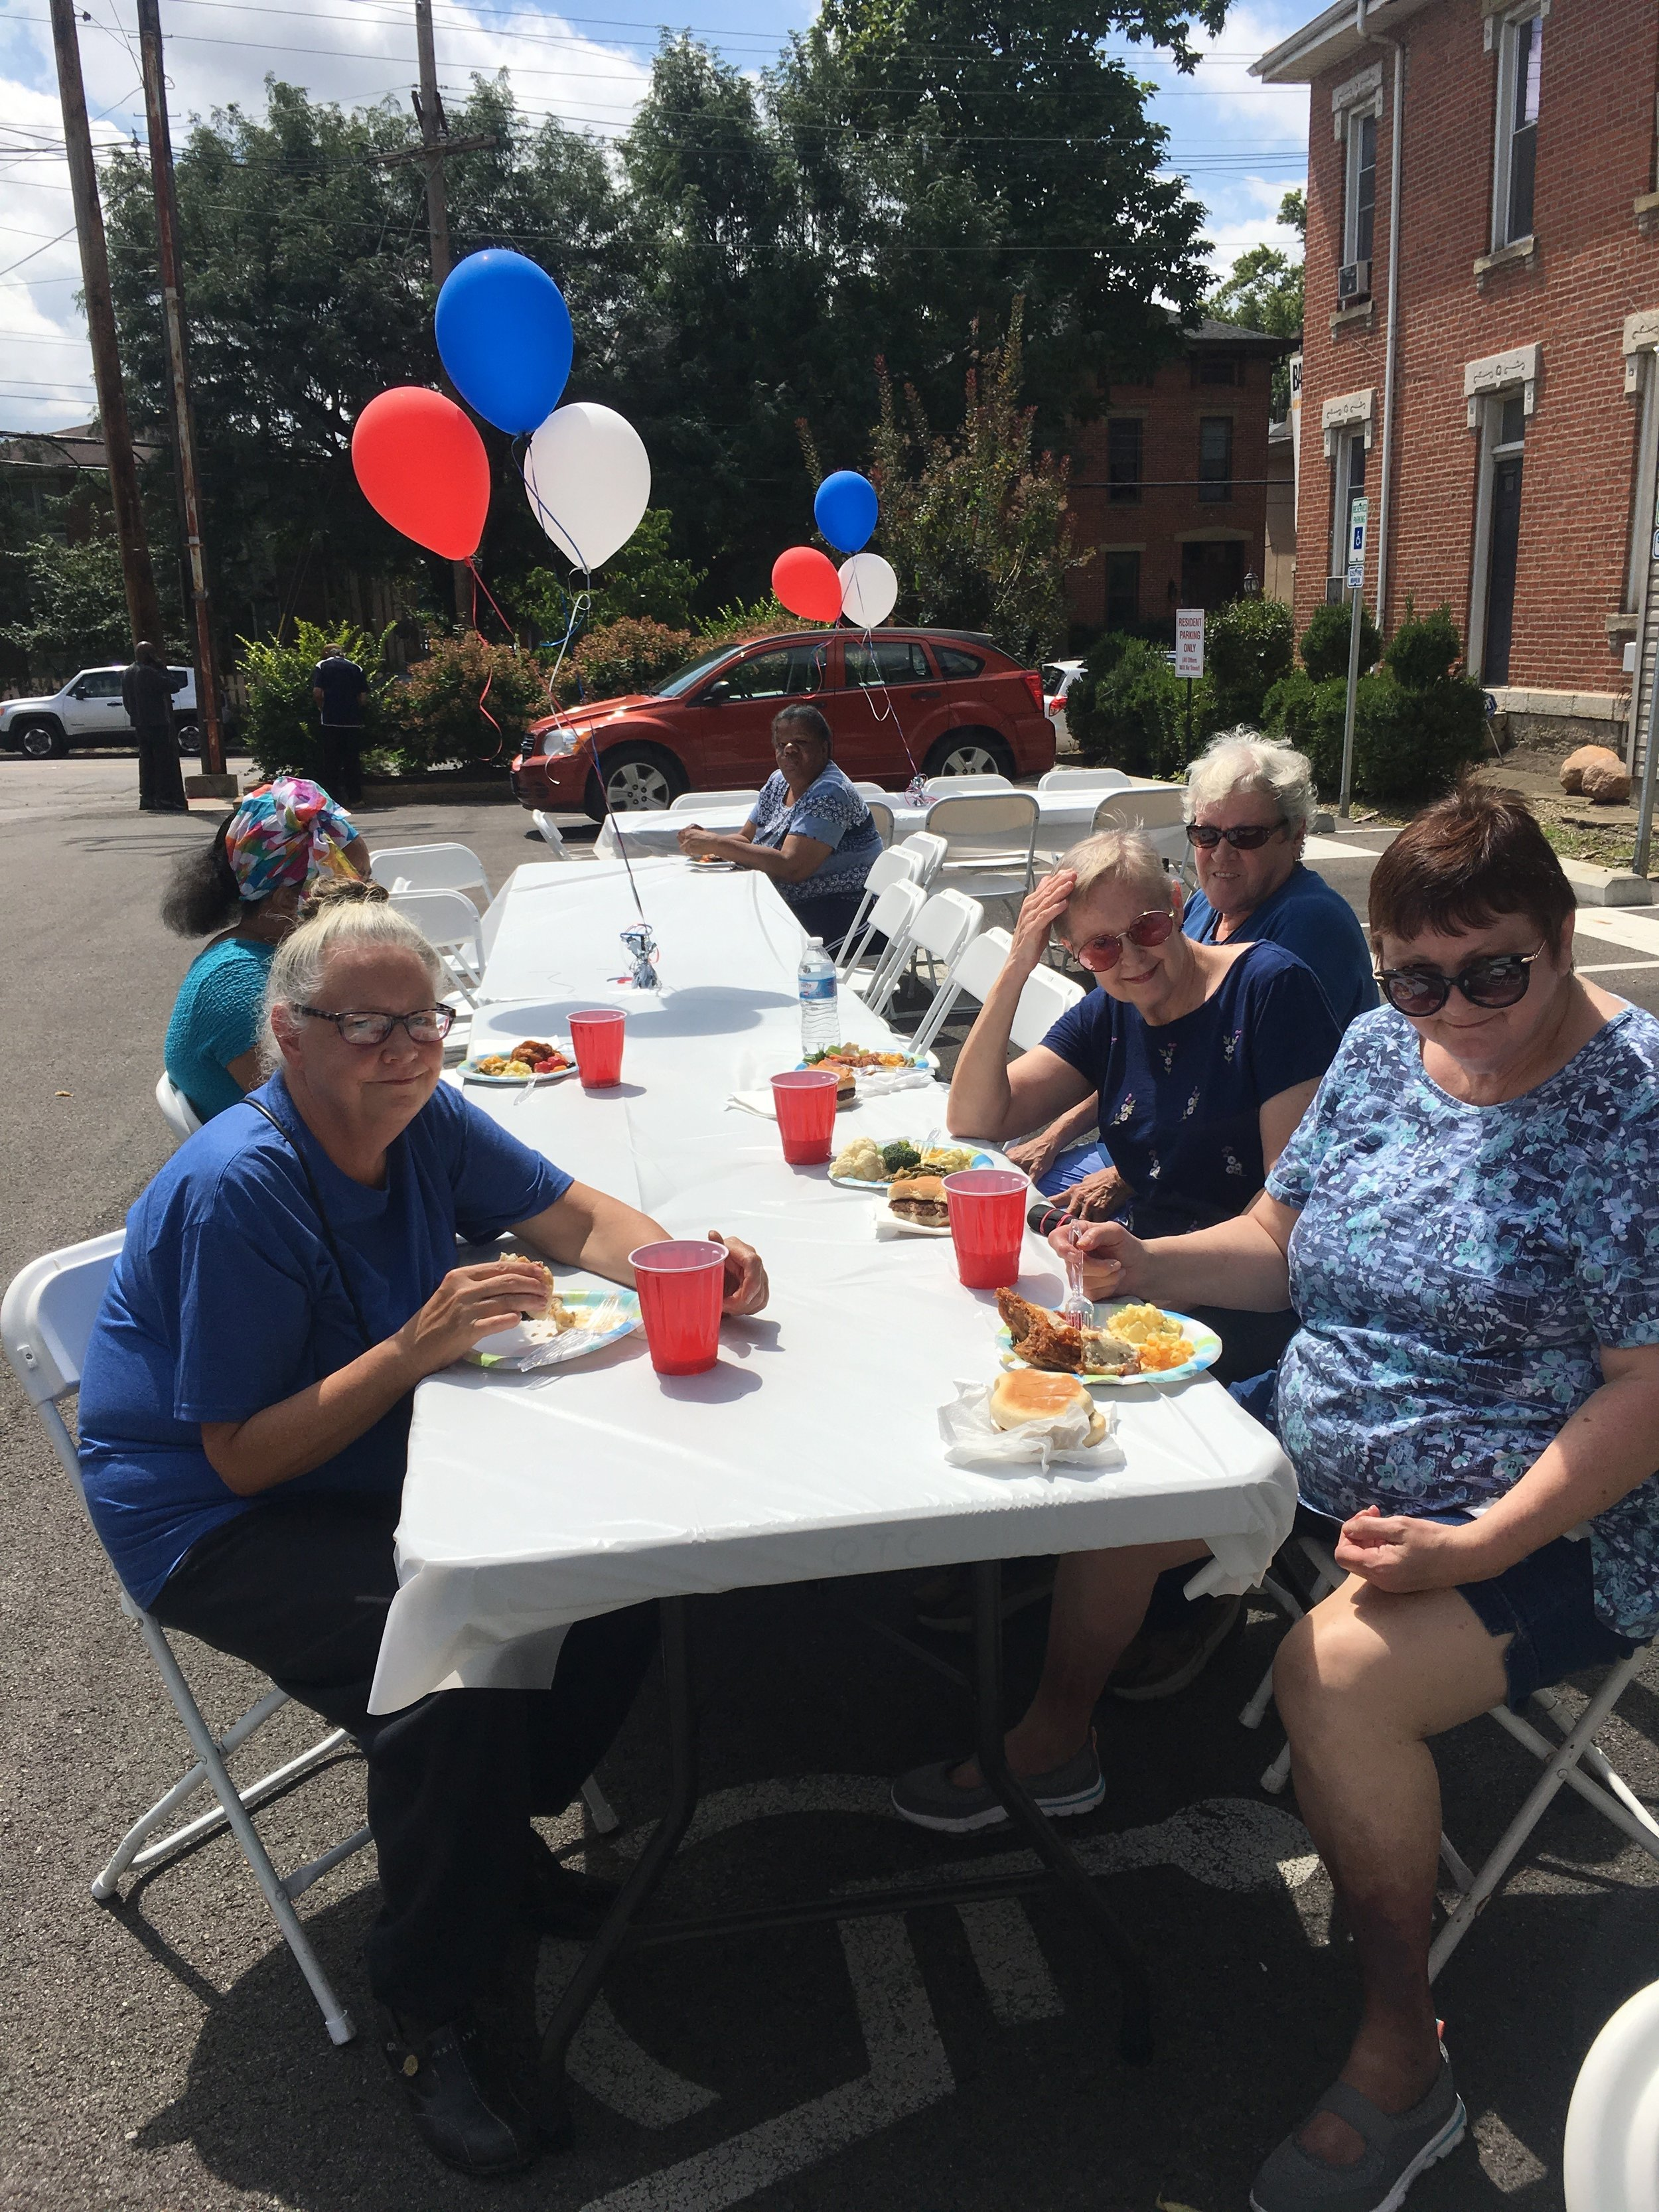 Fifteen residents of Homeport's Victorian Heritage senior community on North High Street in the University District got an early jump on Labor Day, coming together on Aug. 30 for a picnic style event. The residents ate amazing food, much prepared/donated by Property Manager Natasha Roserie. They also shared sunshine and games of BINGO.